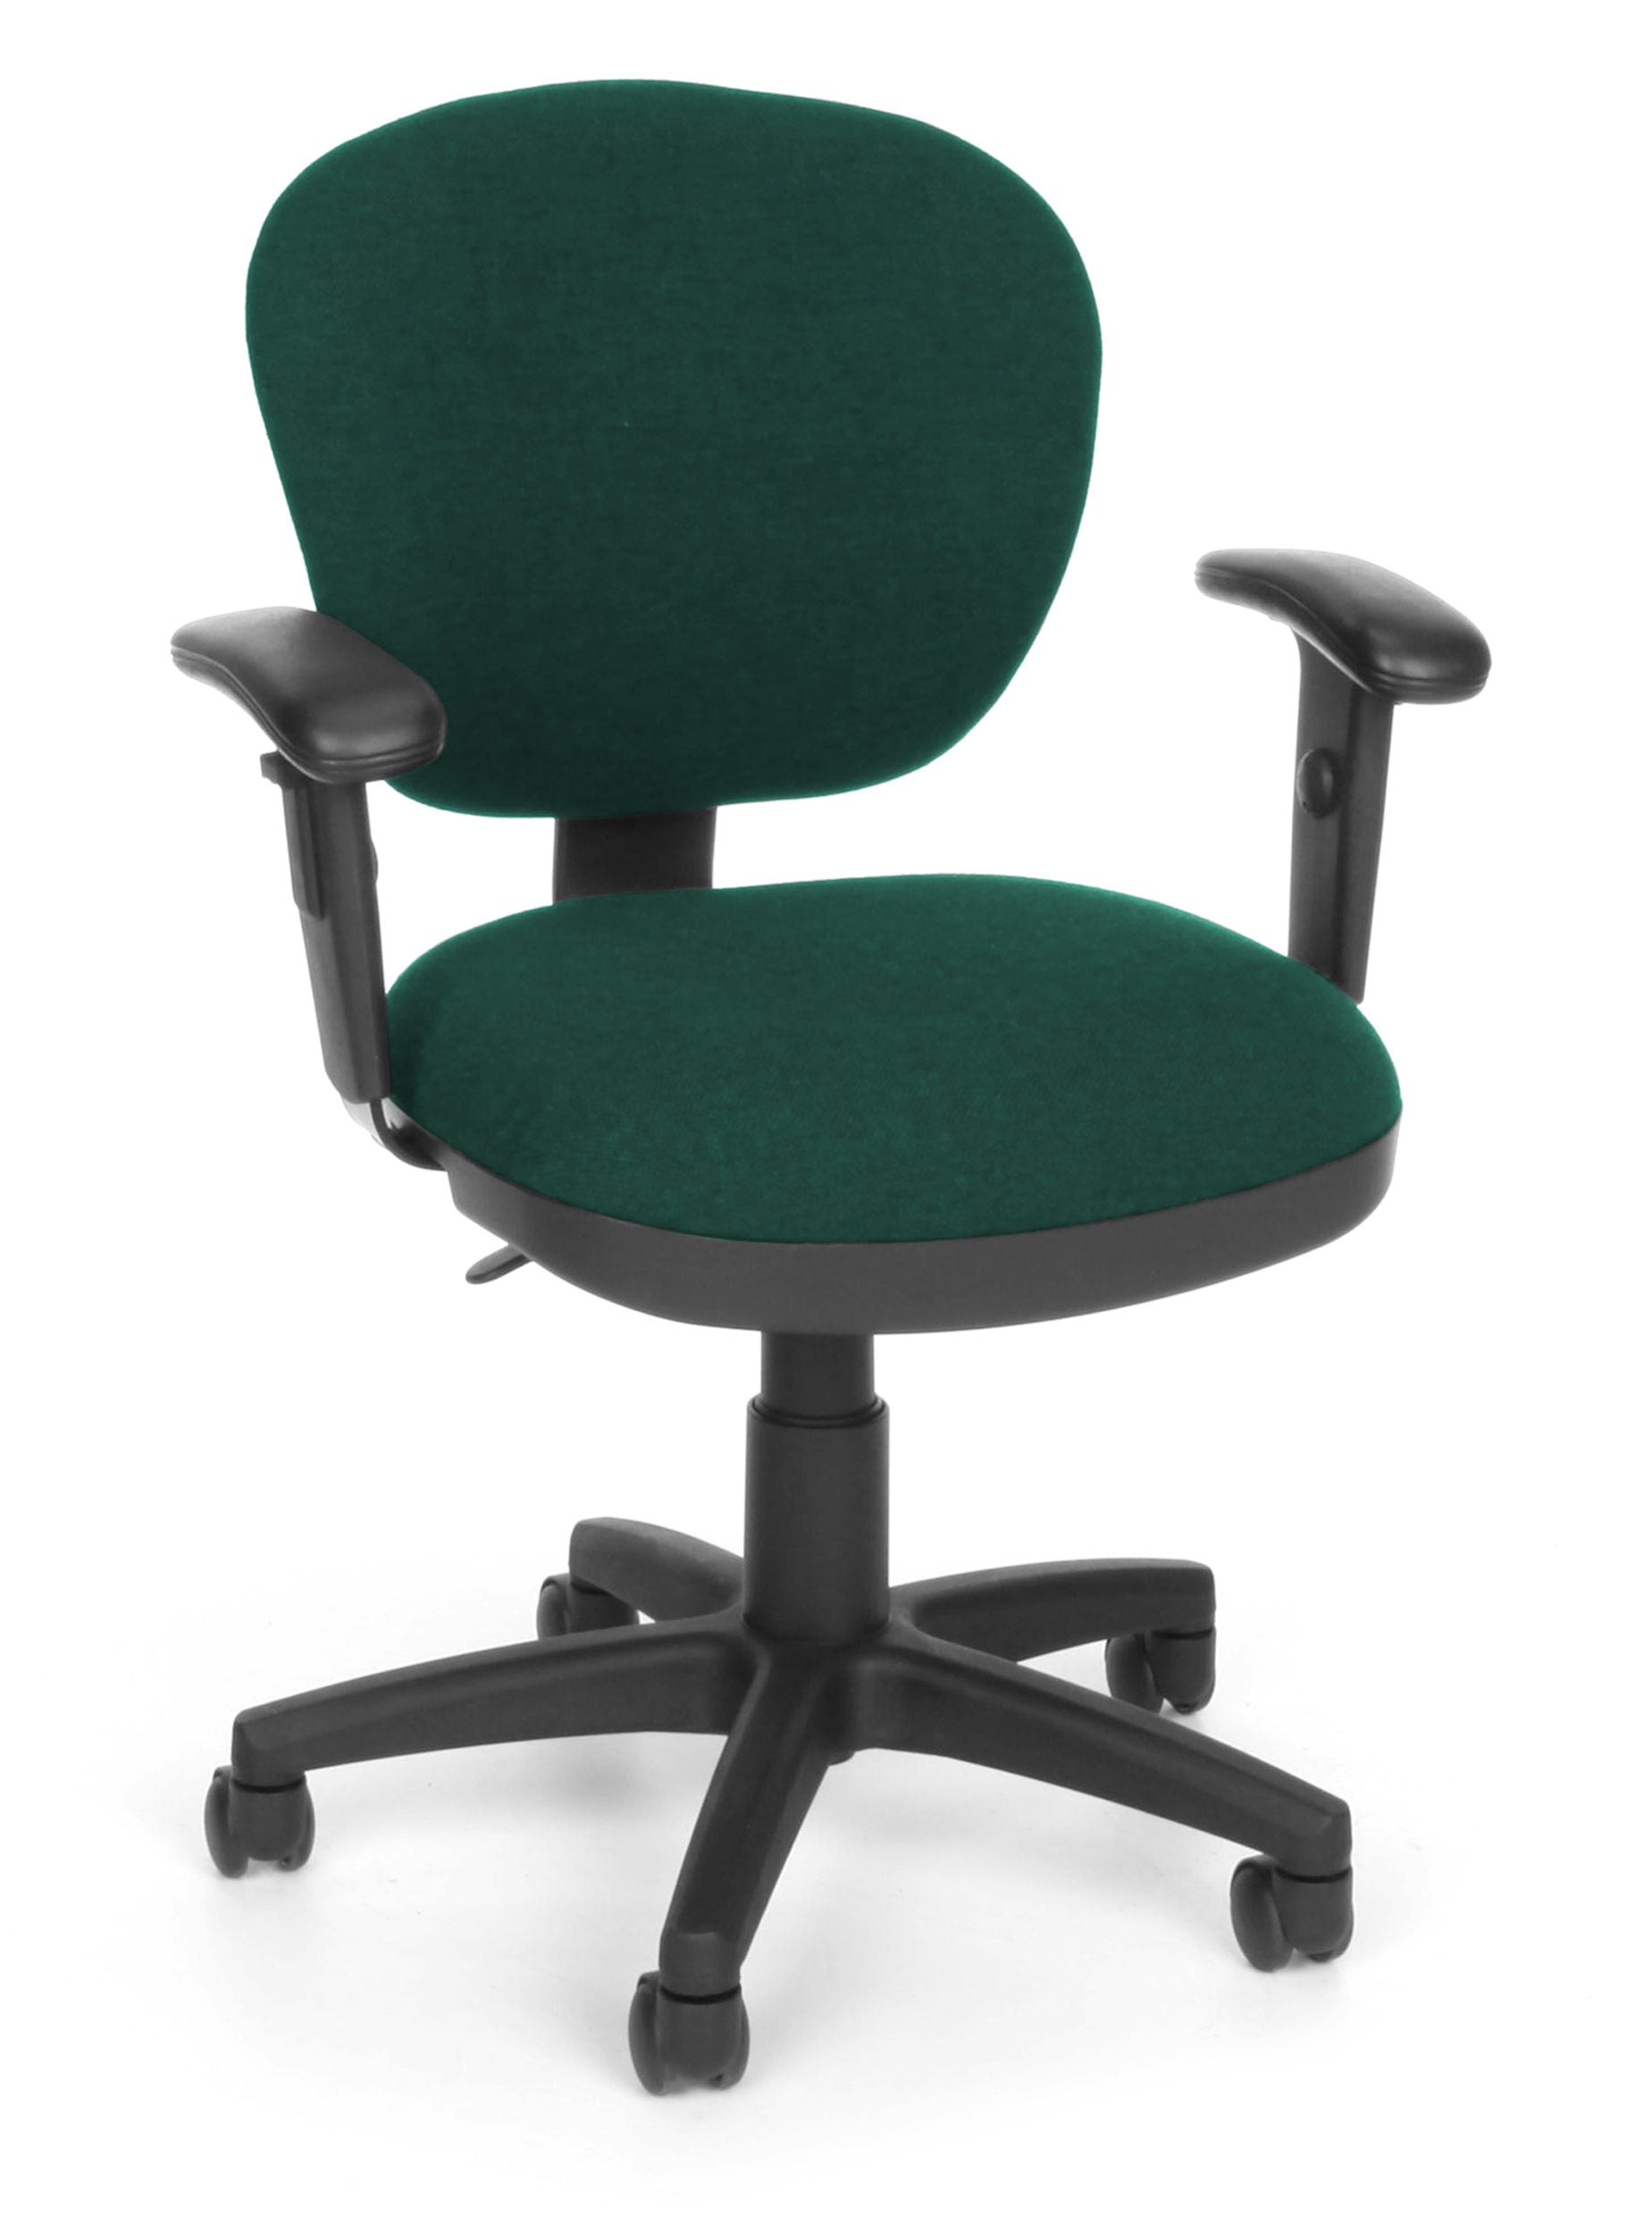 Model 150-AA Fabric Swivel Light Use Task Computer Arms Chair